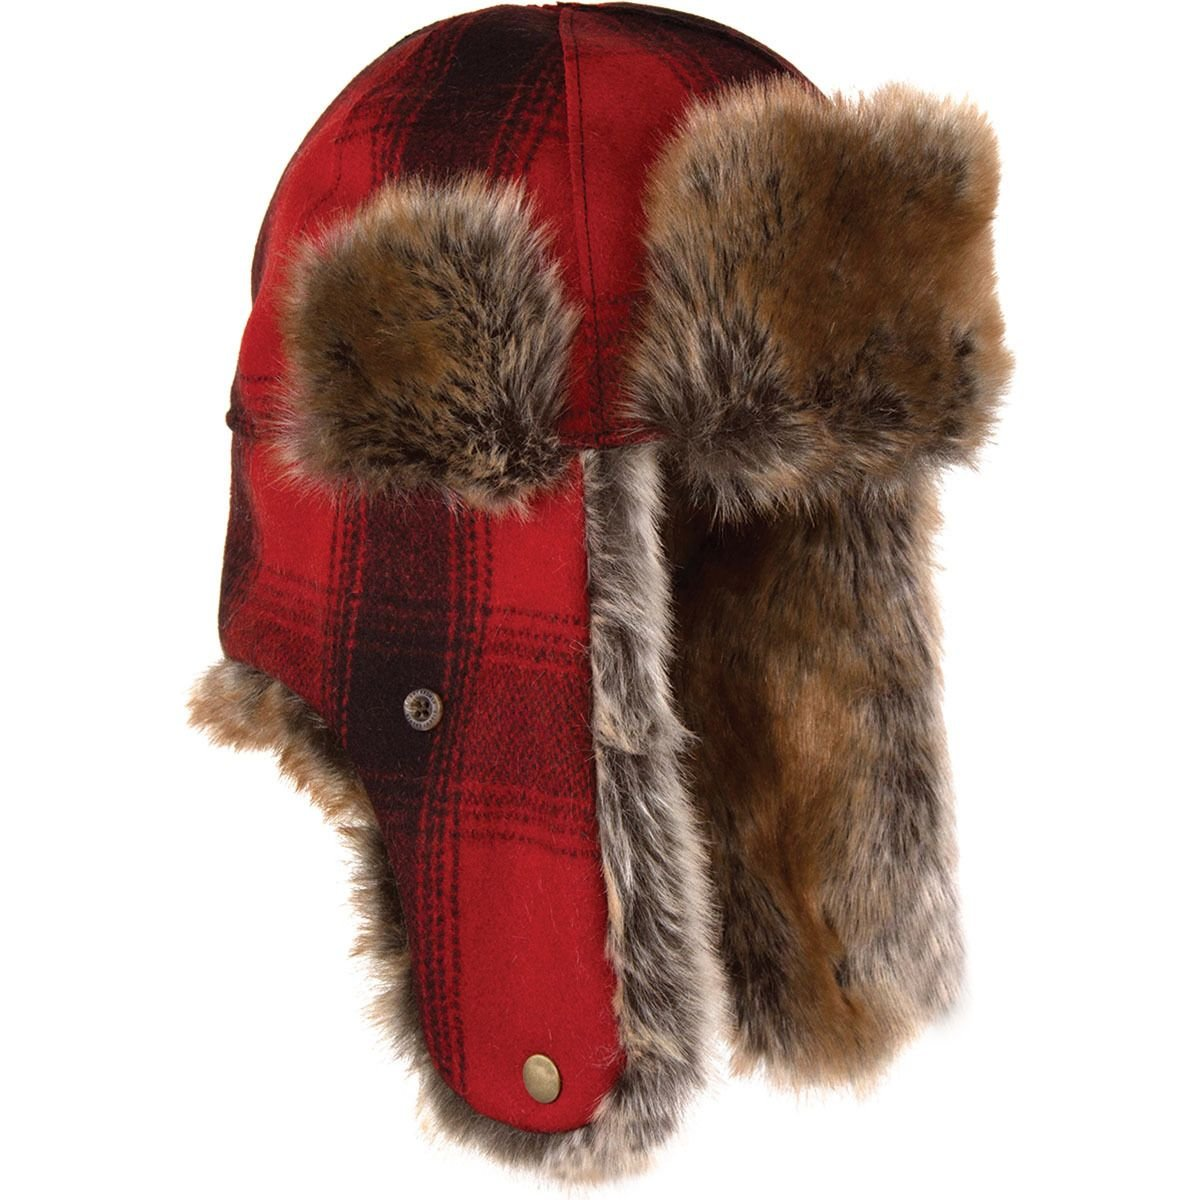 Stormy Kromer Mercantile The Northwoods Trapper Hat Red/Black Plaid, XL